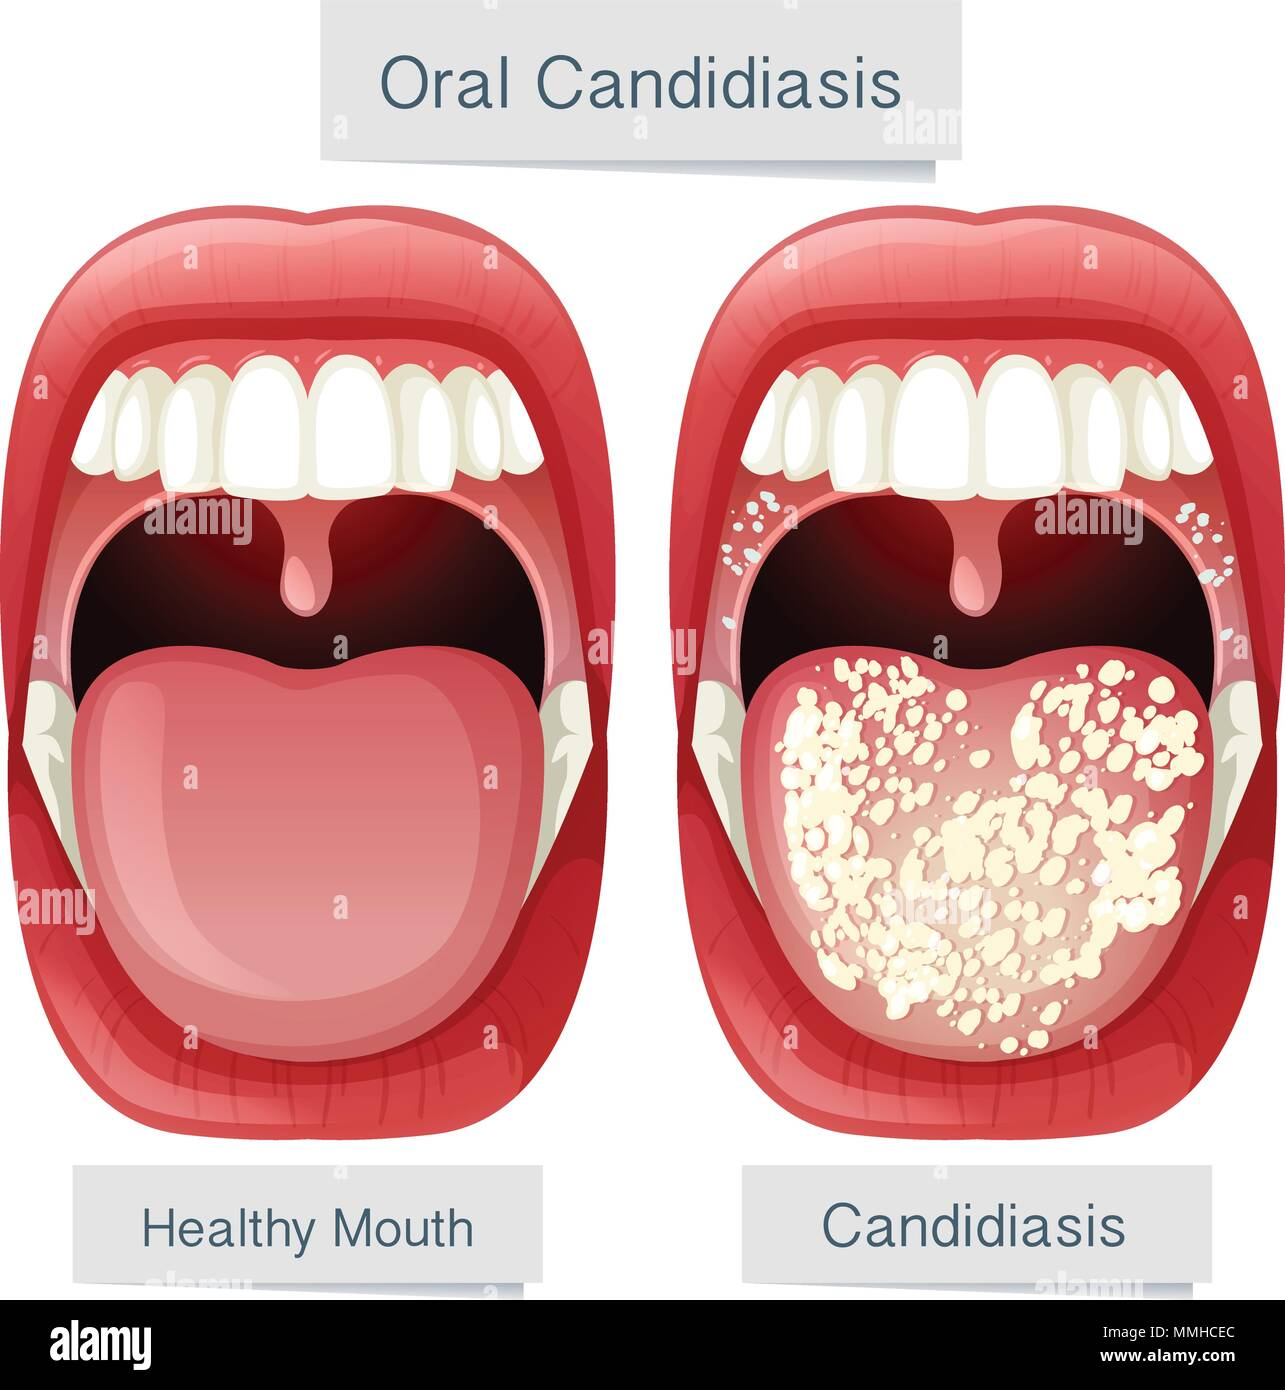 Human Mouth Anatomy Oral Candidiasis illustration - Stock Vector